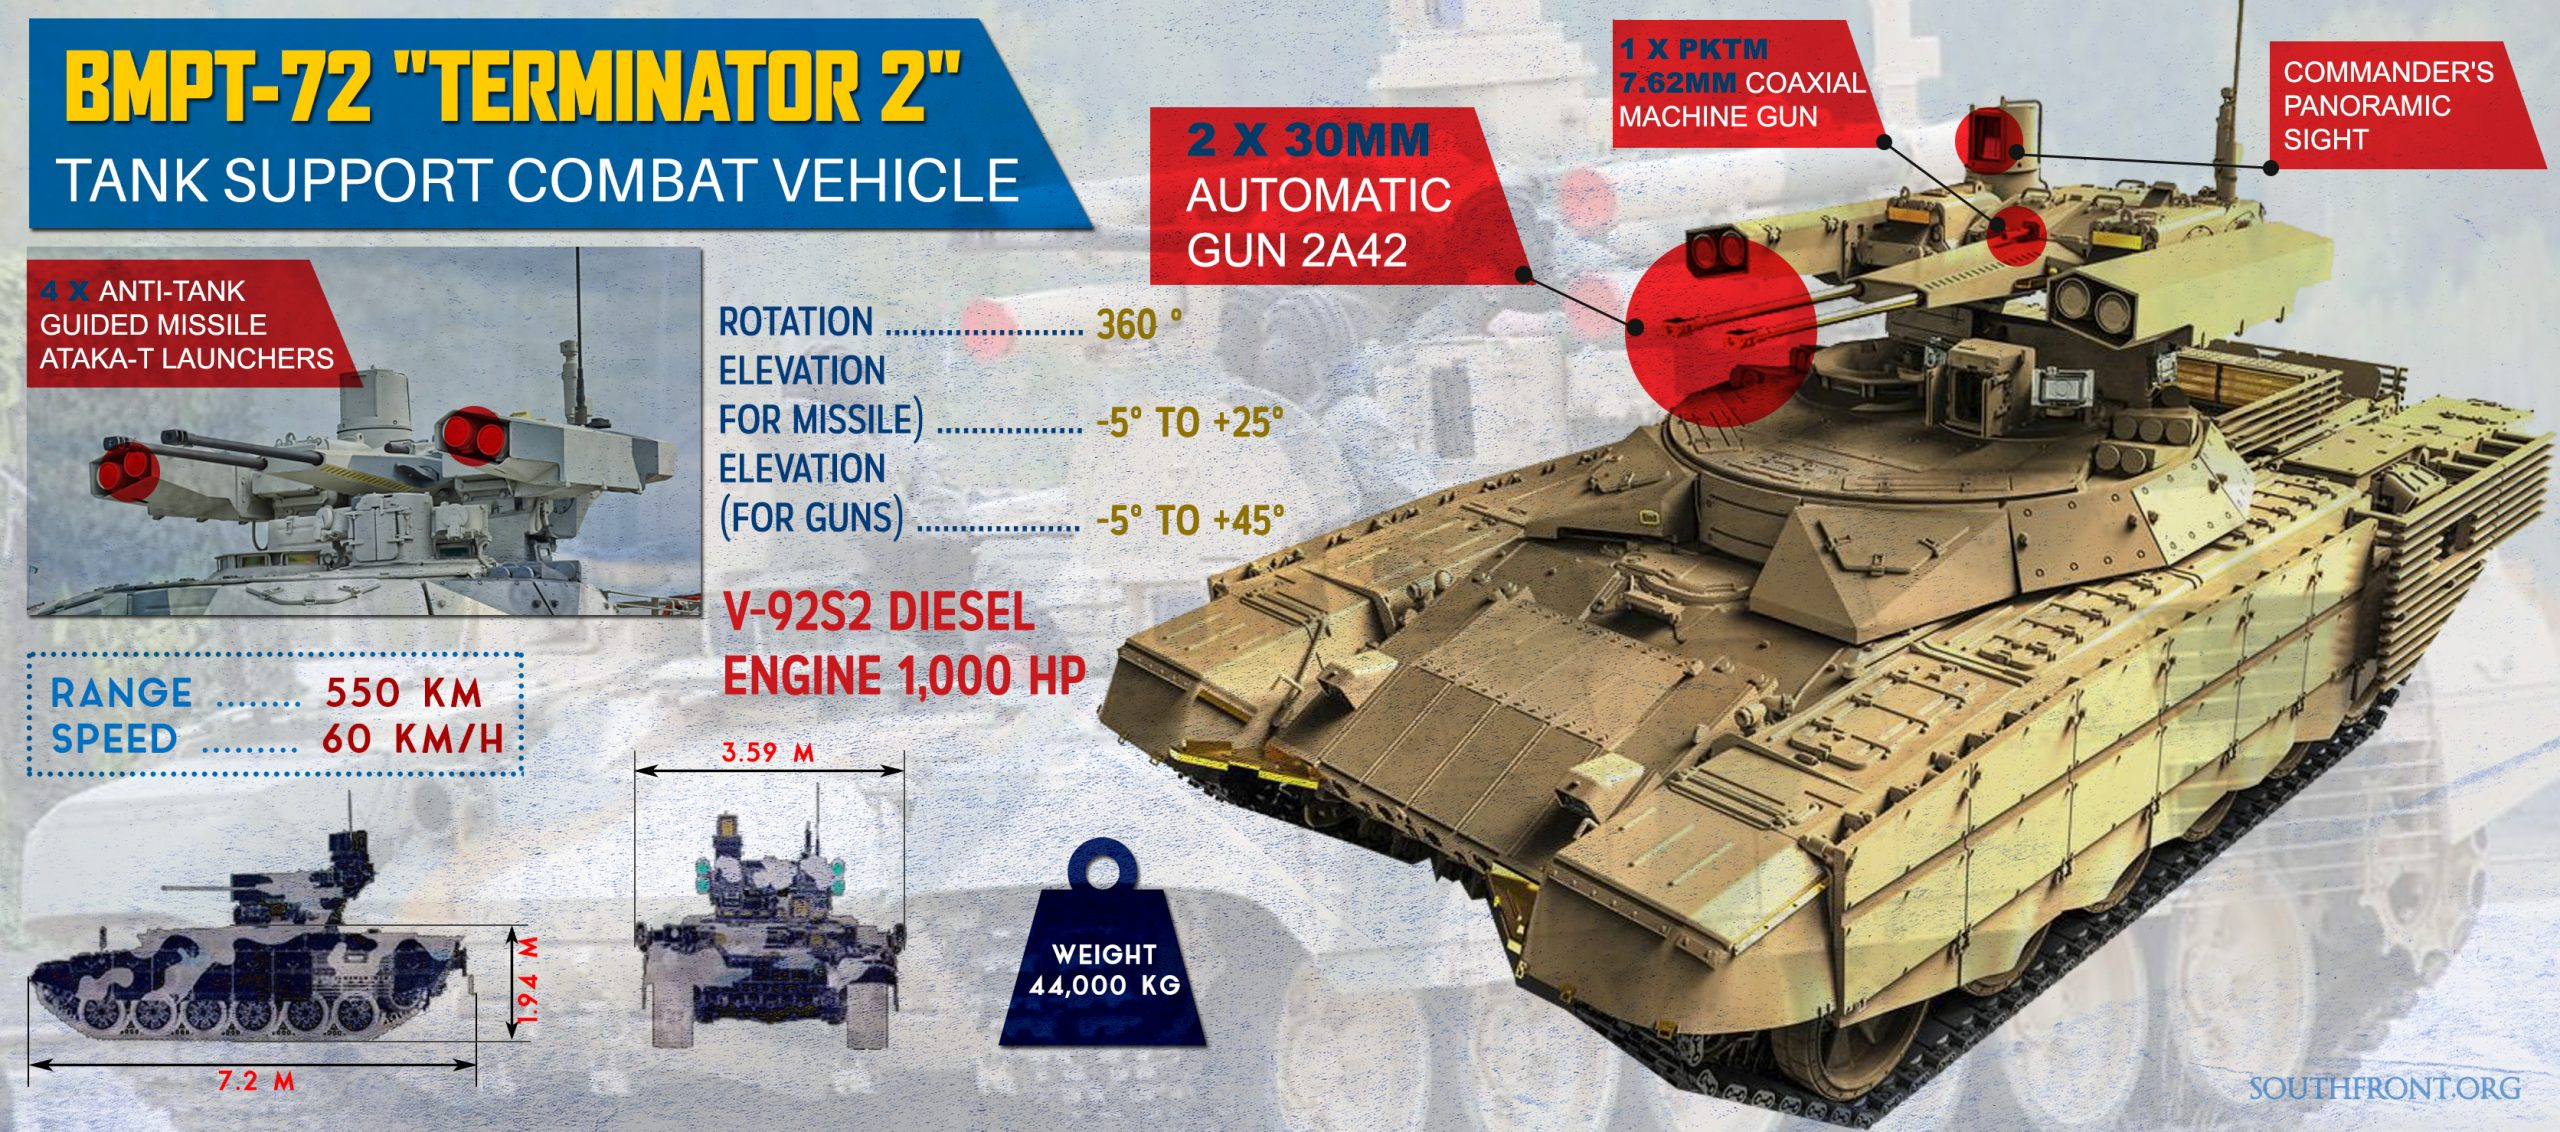 Photograph Of BMPT-72 Terminator 2 Tank Support Fighting Vehicles In Algeria